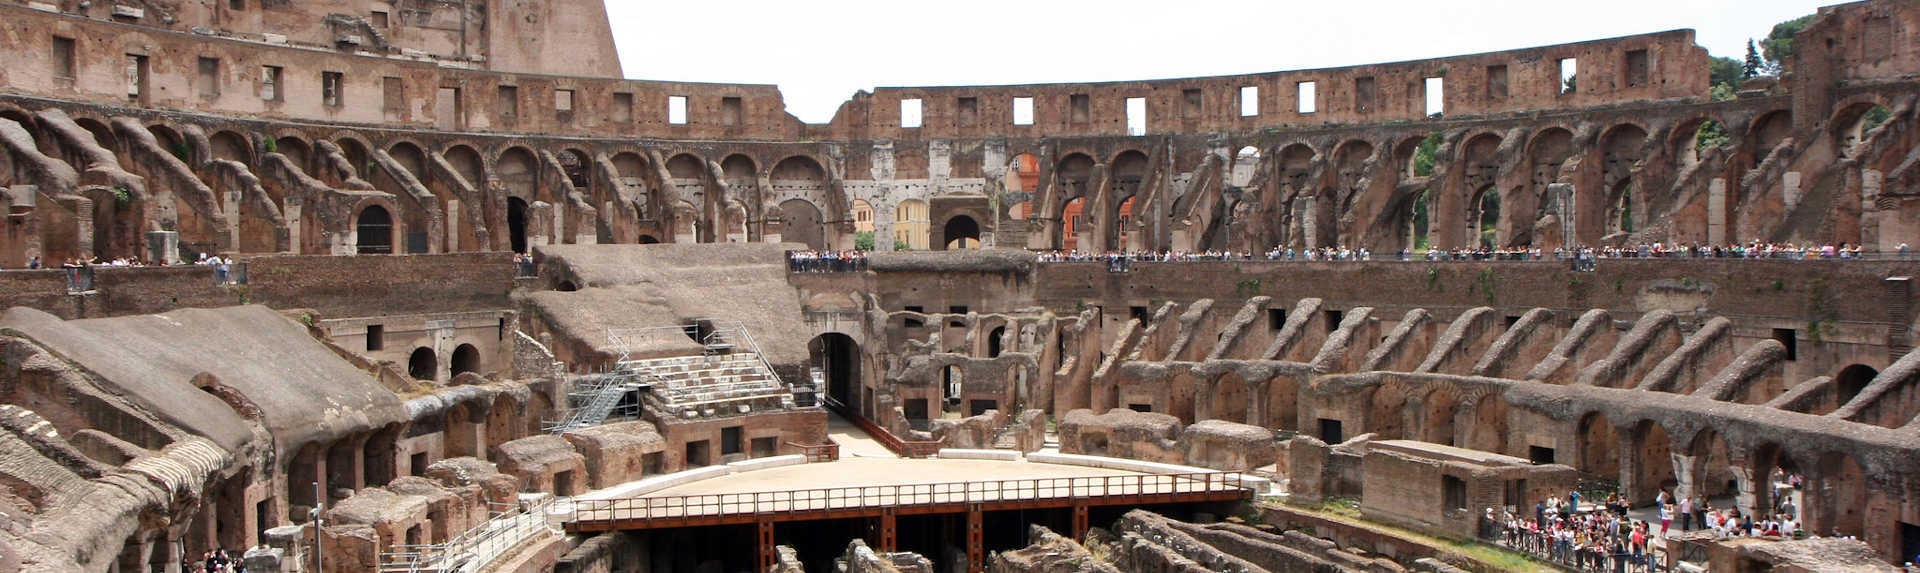 Why is the Colosseum broken?